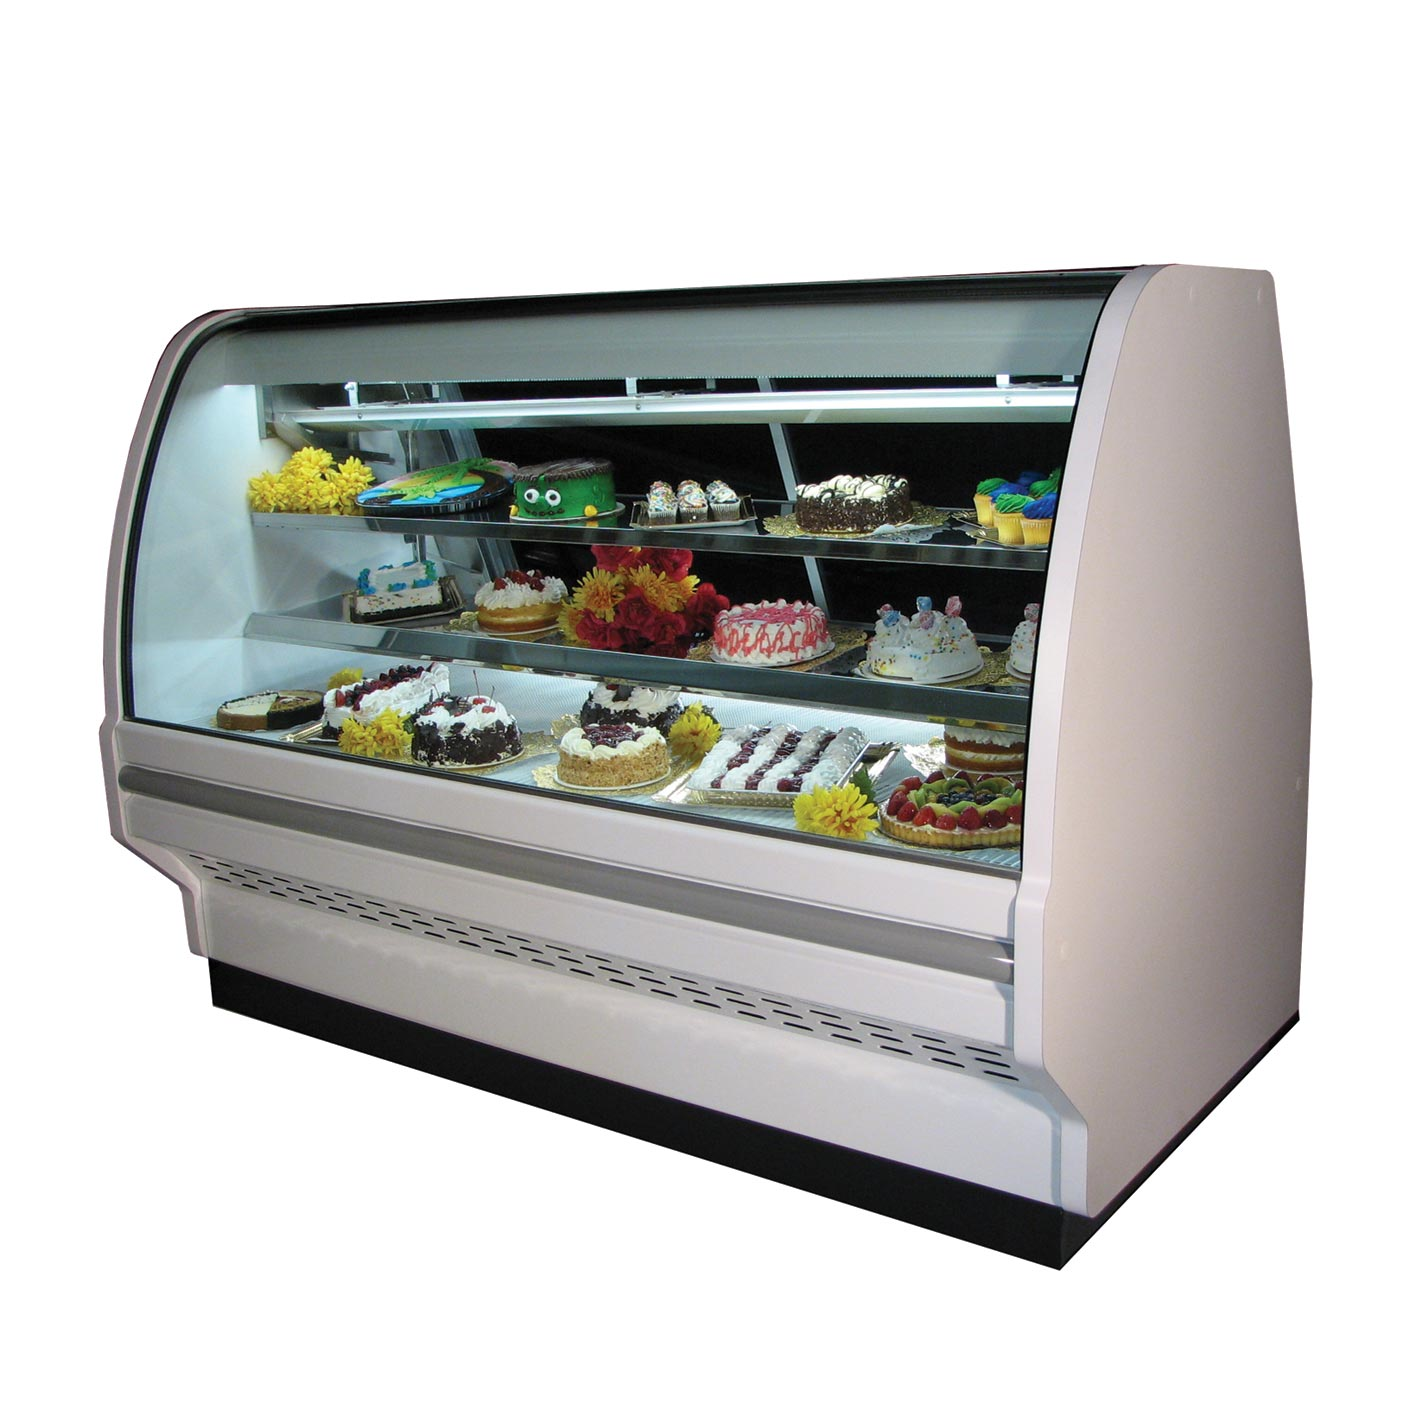 Howard-McCray R-CBS40E-4C-BE-LED display case, refrigerated bakery